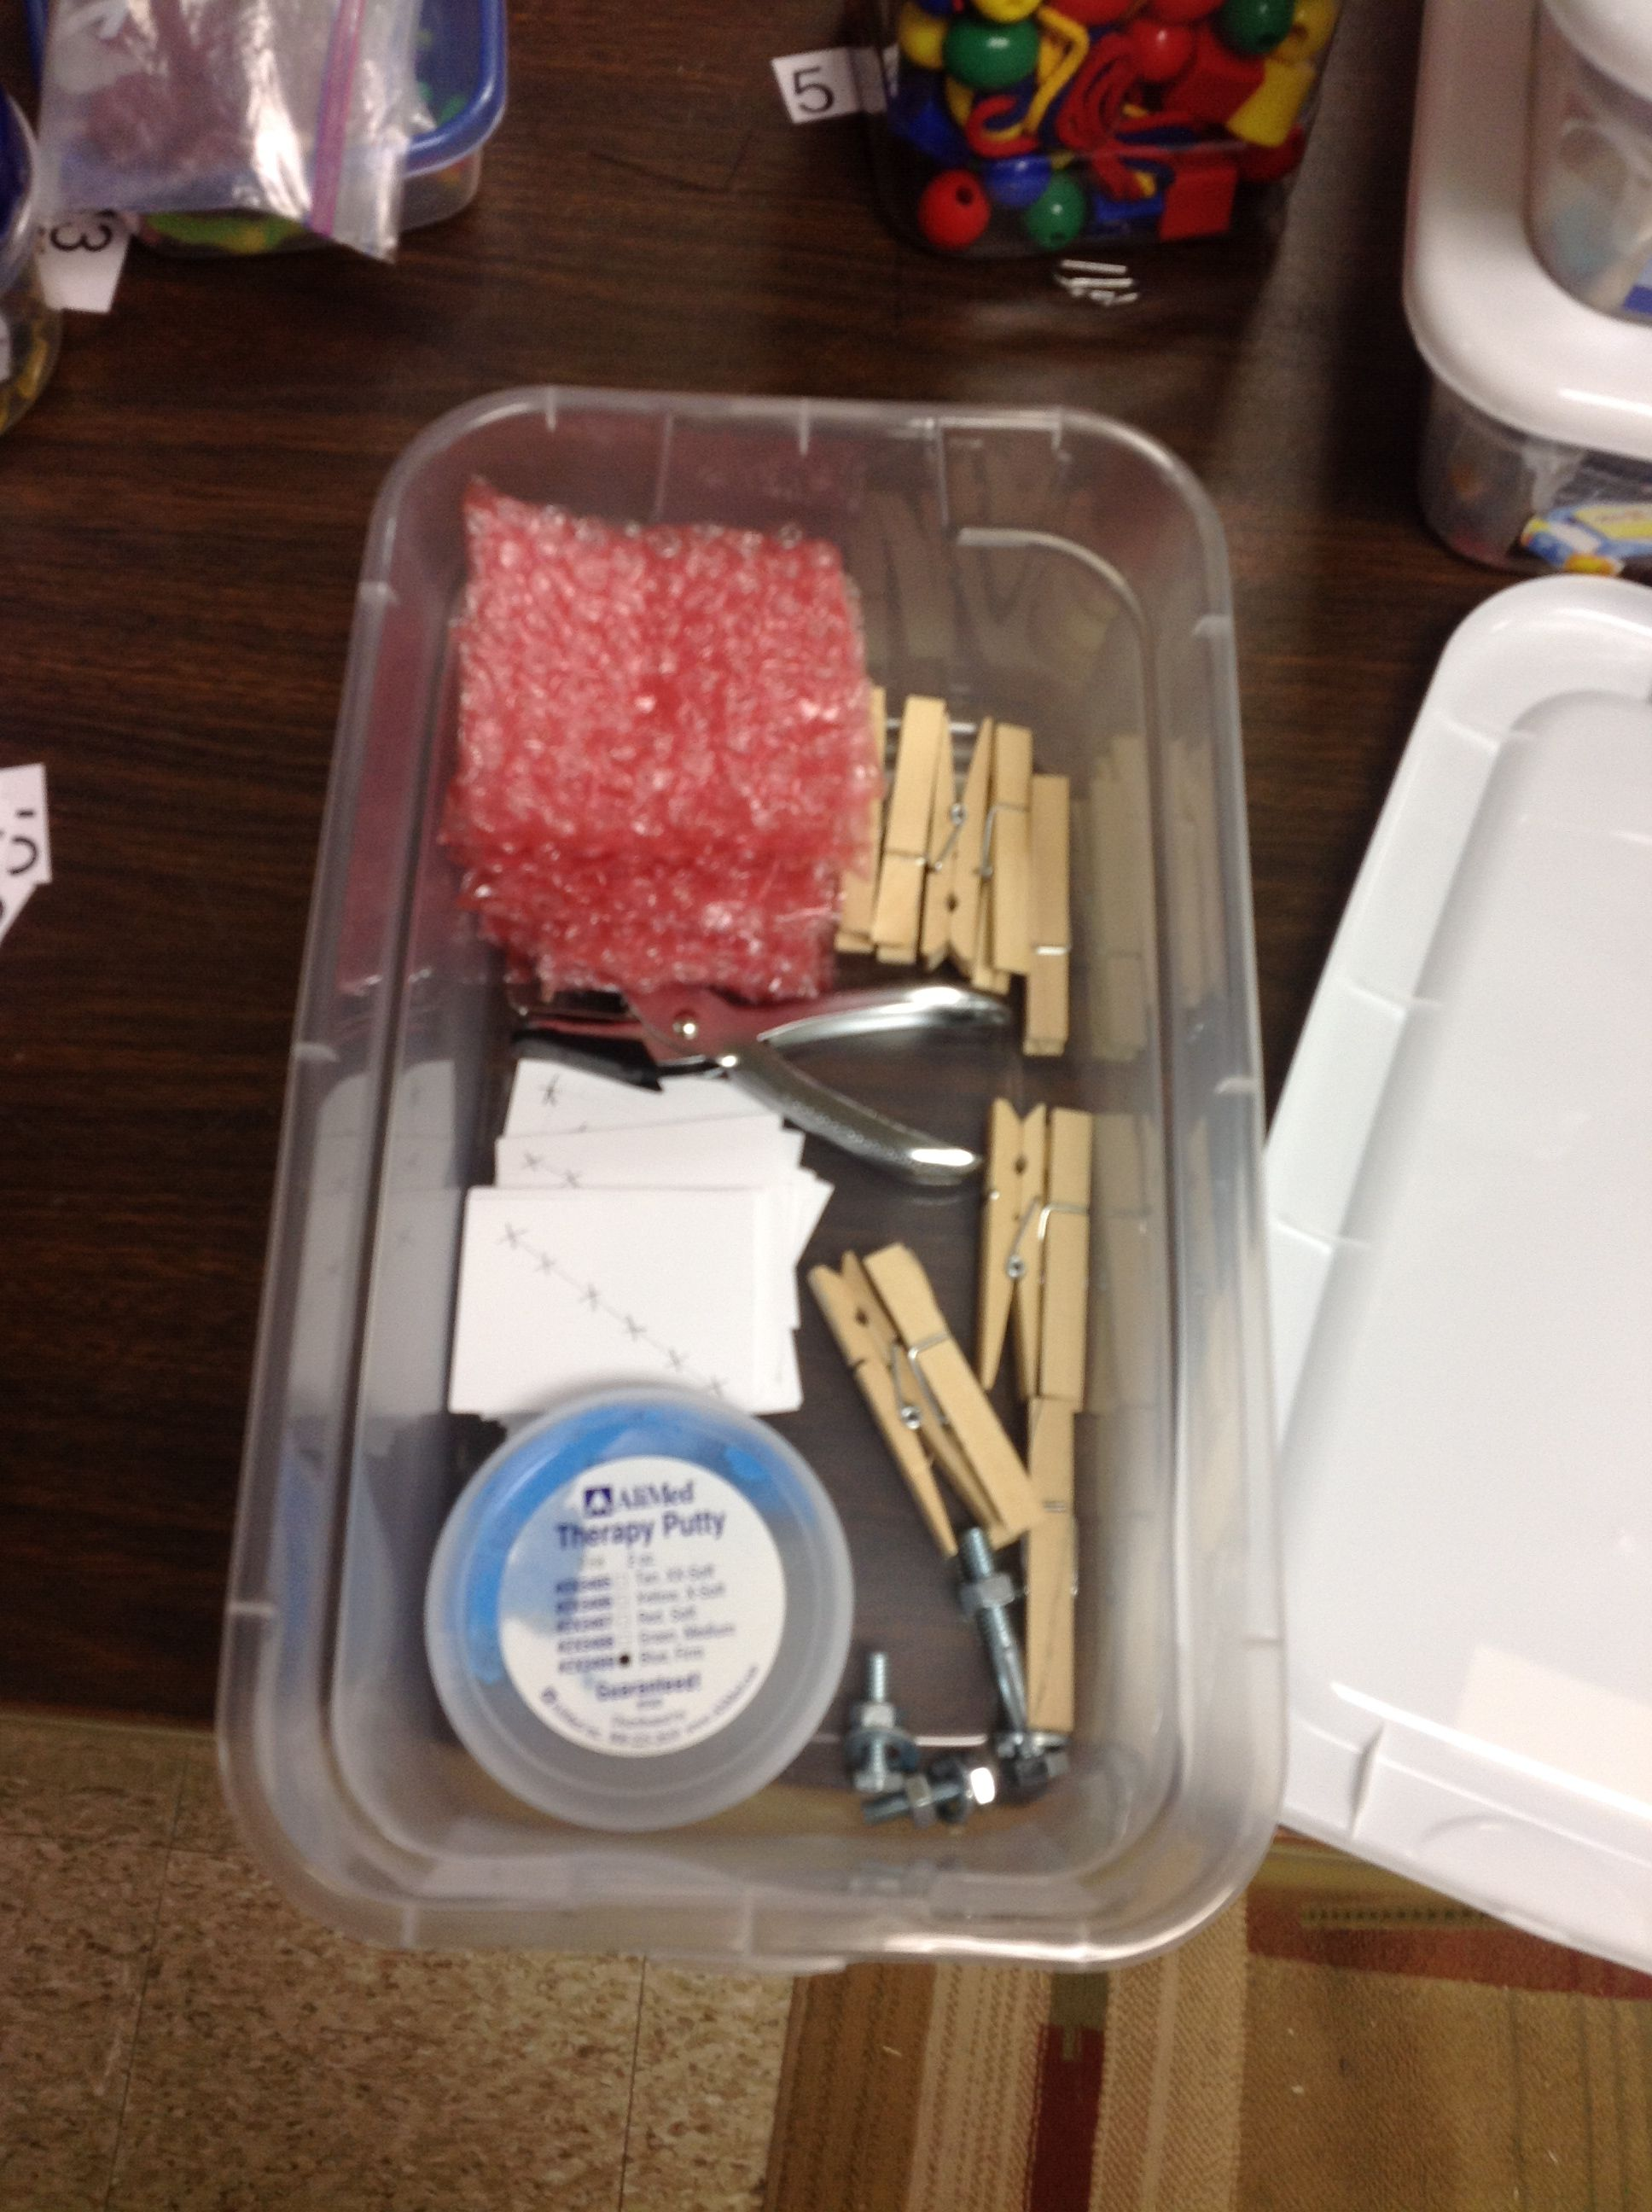 Hand Strengthening task box: includes hole punch and cards to punch out, therapy putty, clothes pins, bubble pop. Great for OT.